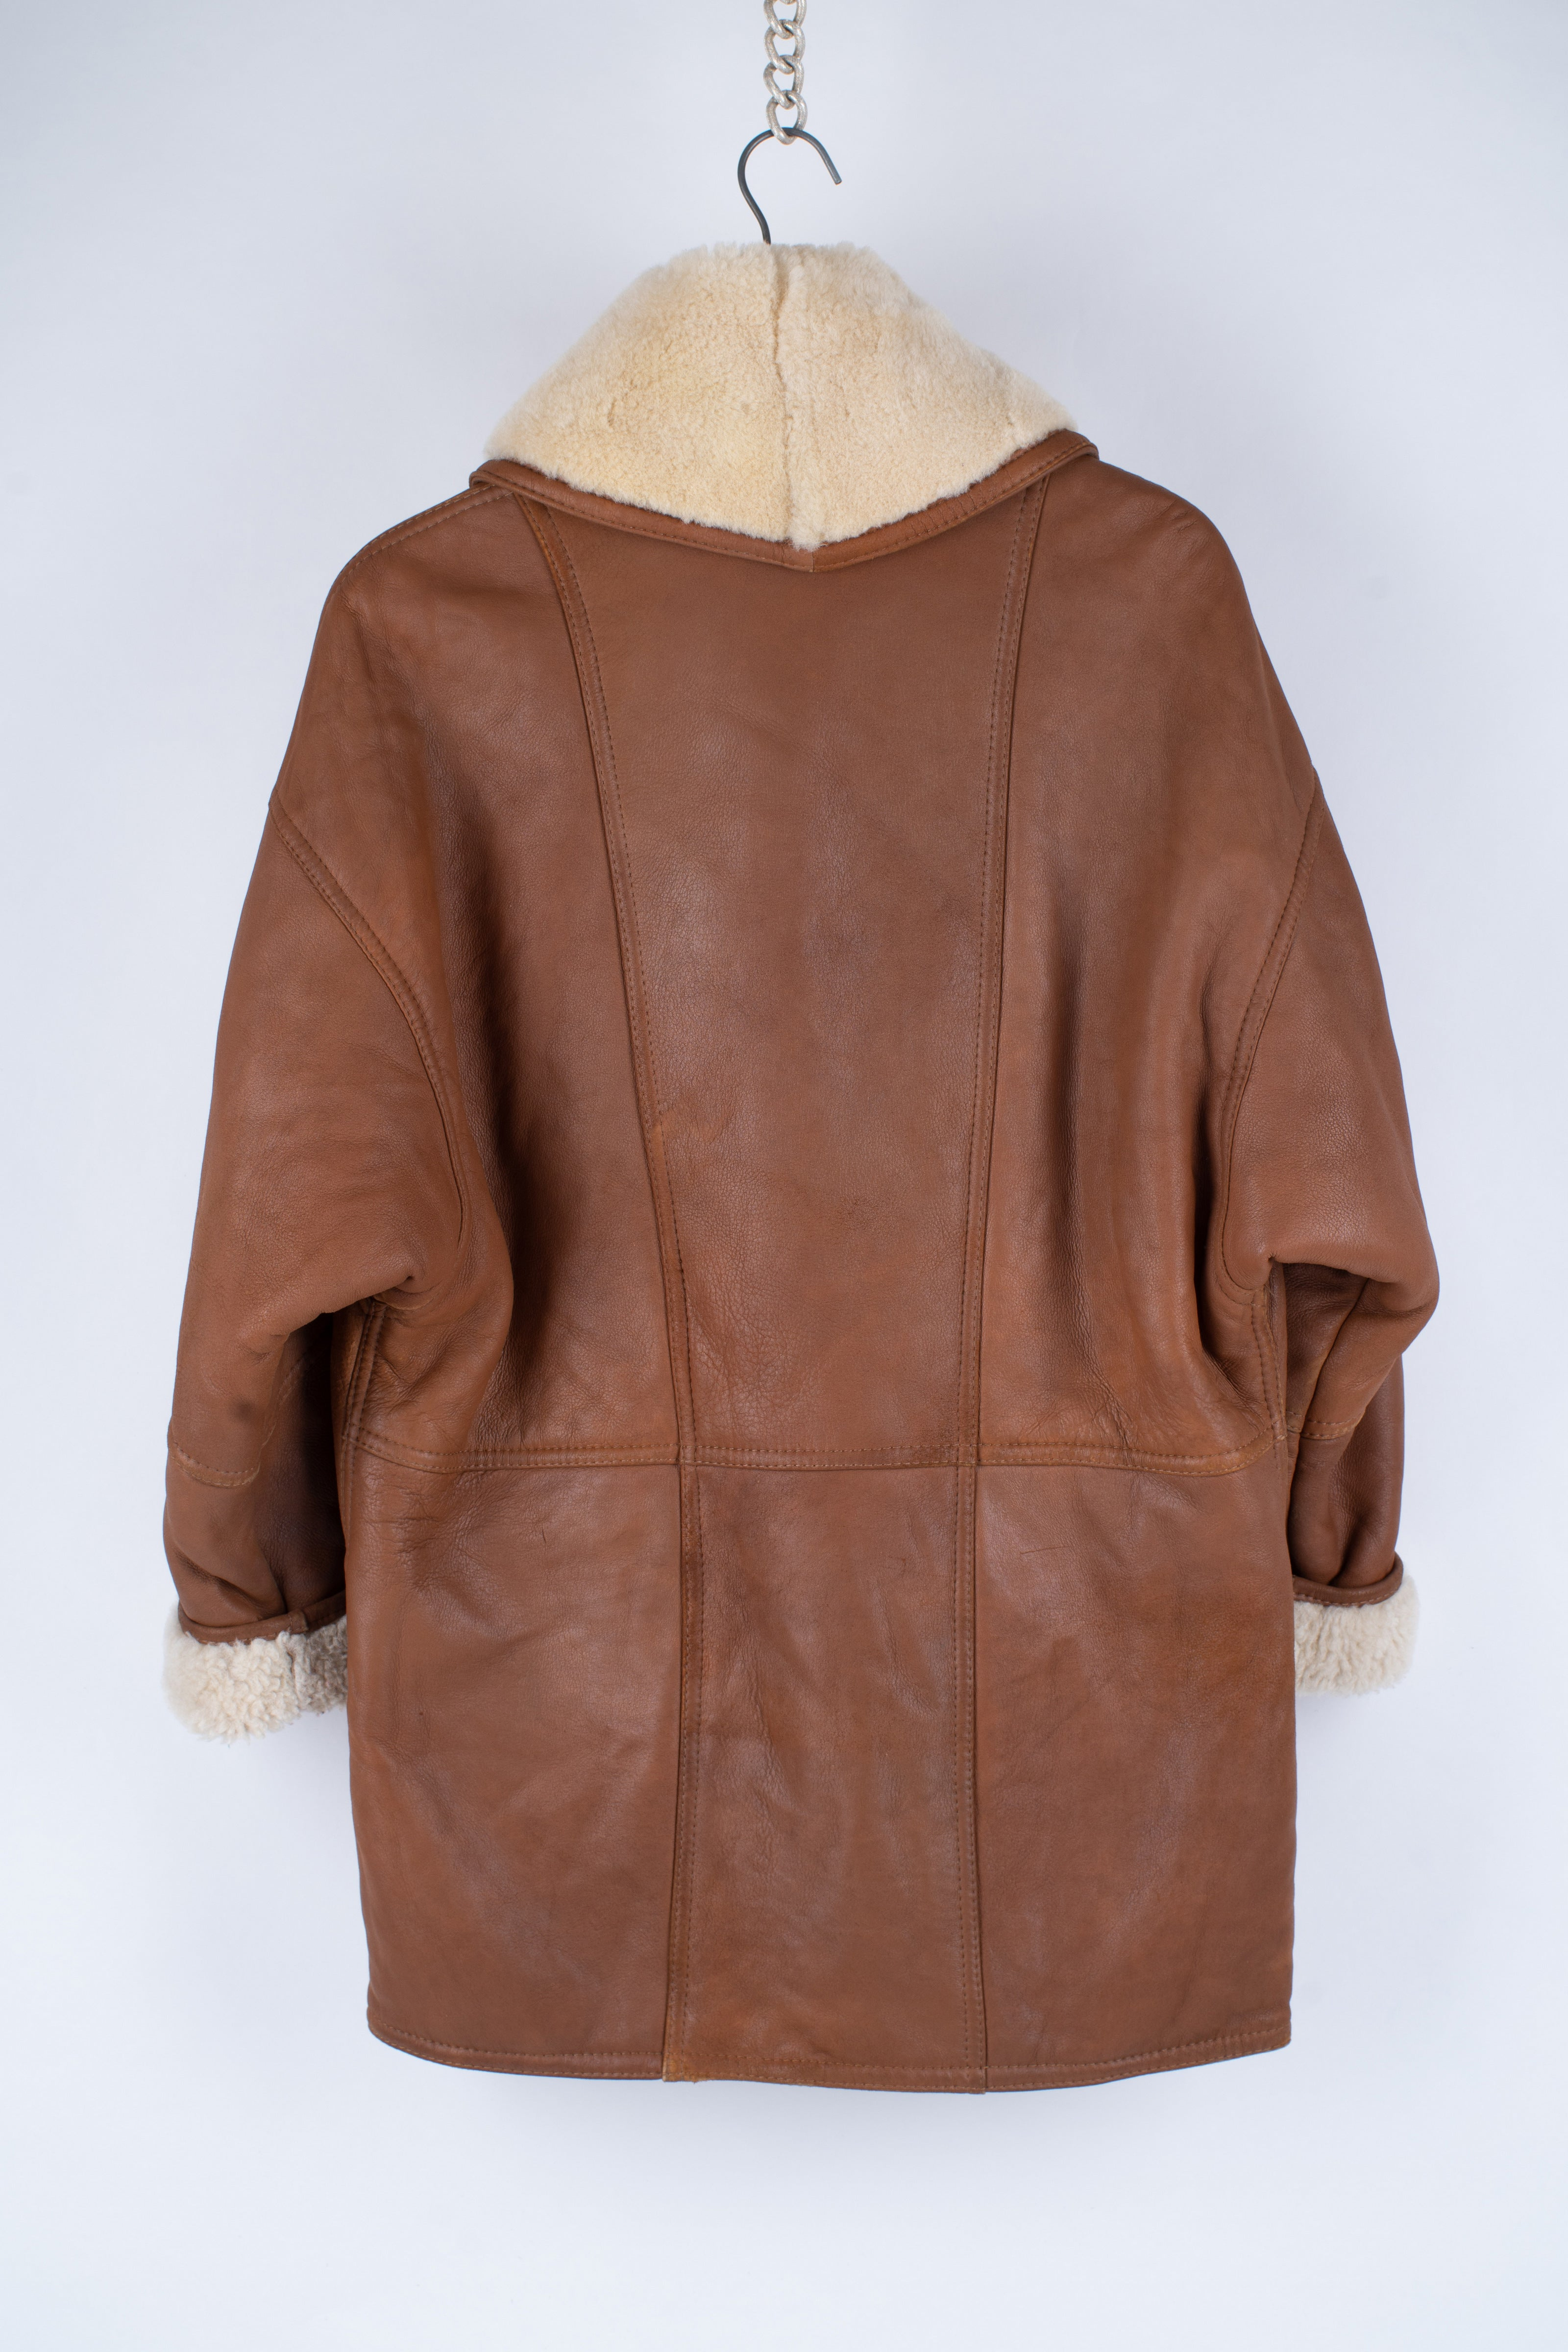 Women's Gingerbread Brown Soft Shearling Cocoon Coat, S